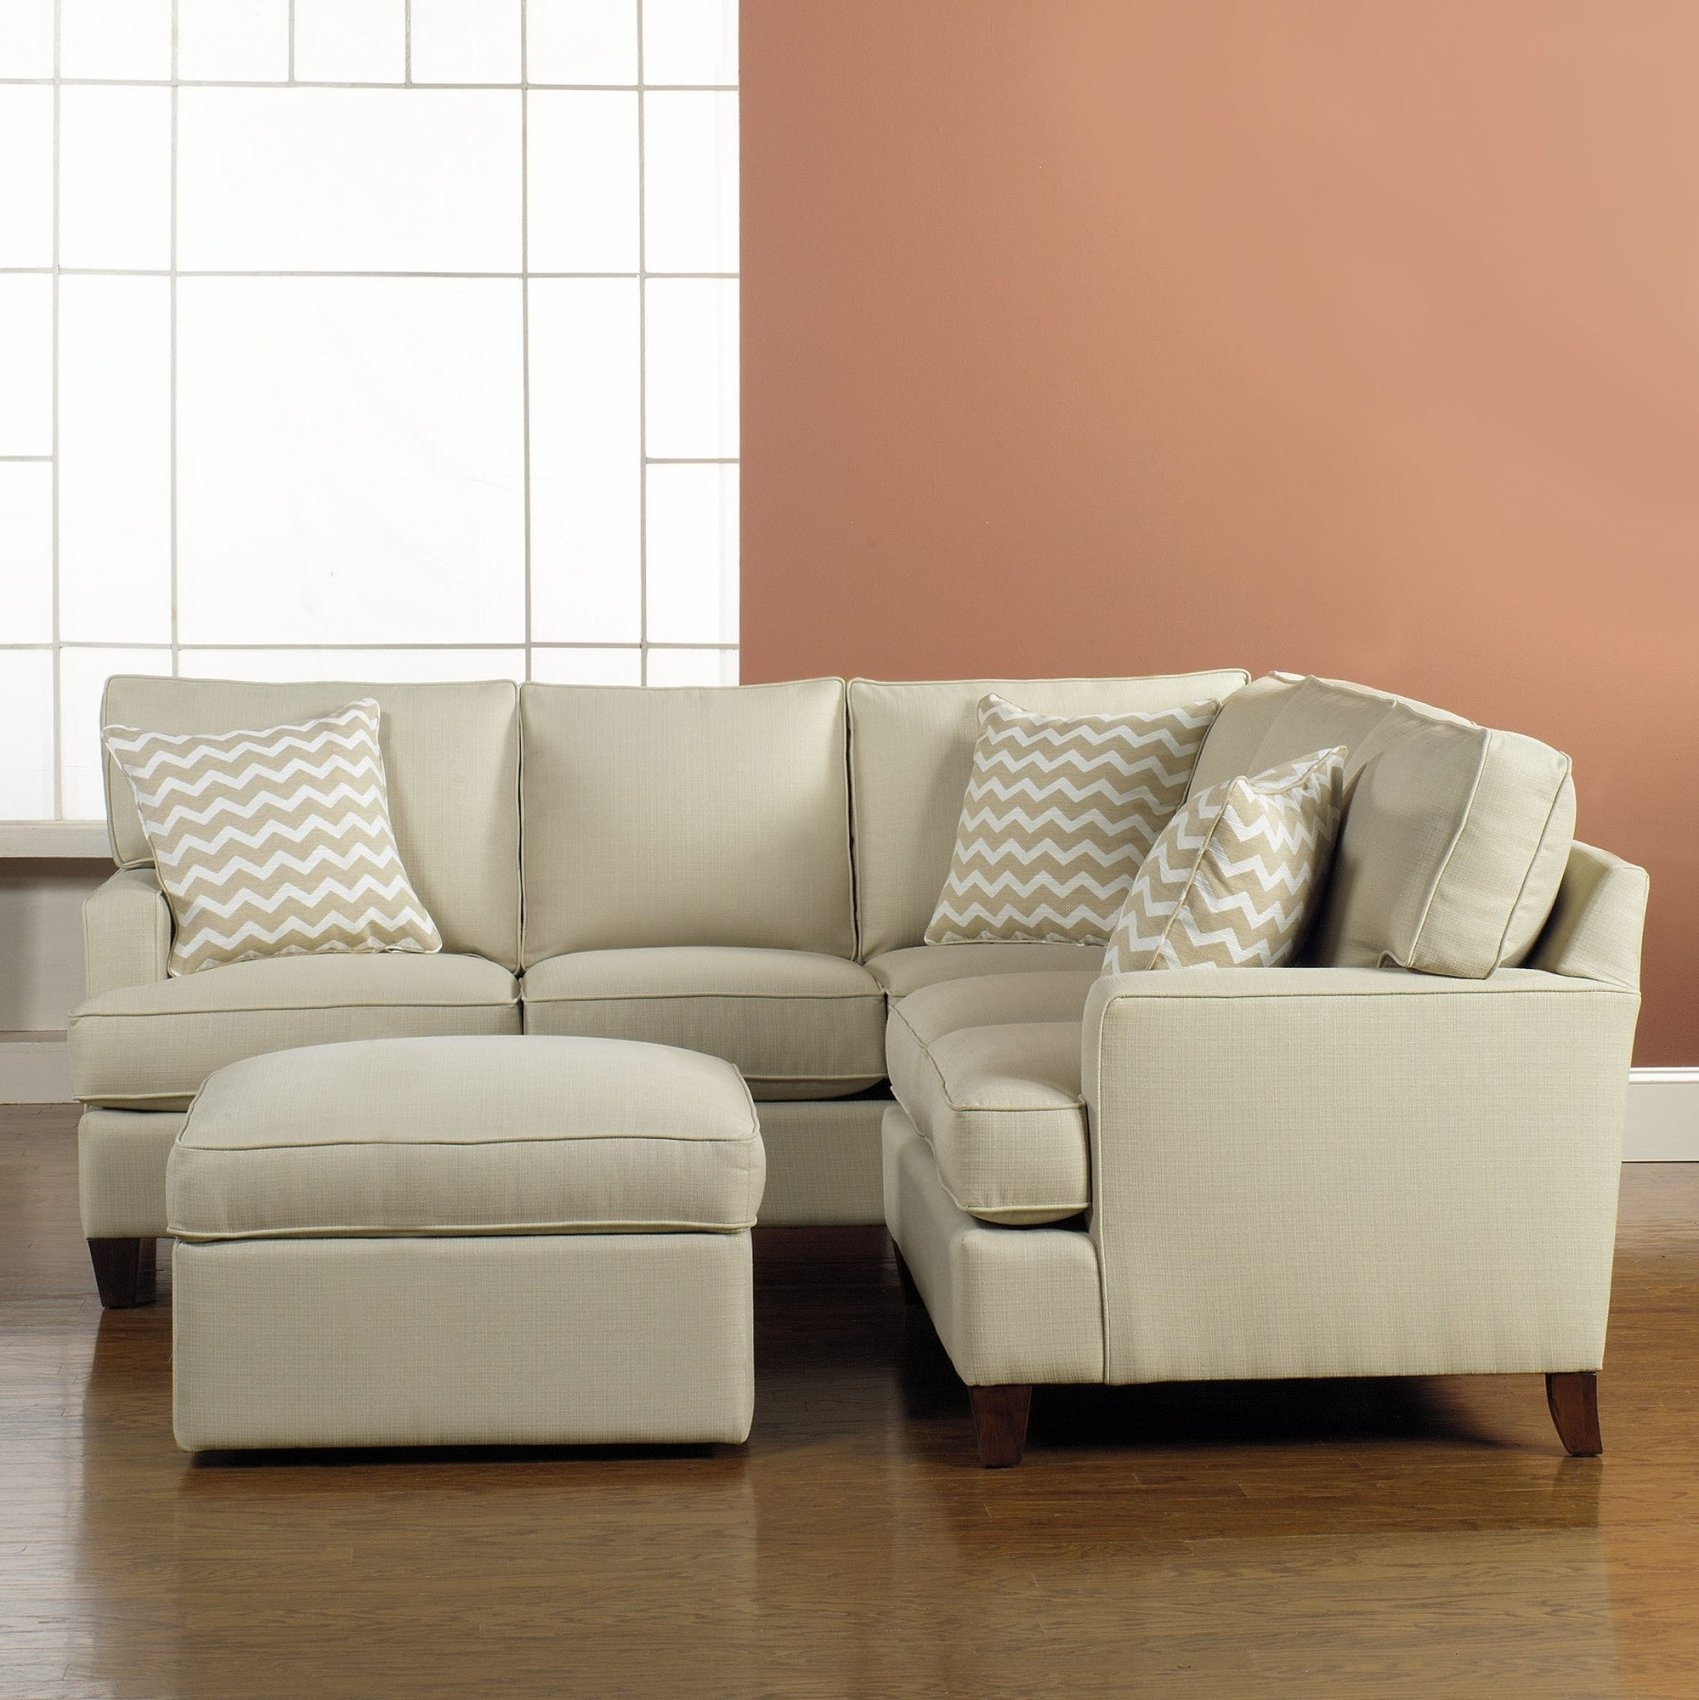 Startling Sectionals For Small Spaces Sectional Sofa 94 In Living Inside Small Spaces Sectional Sofas (Image 9 of 10)